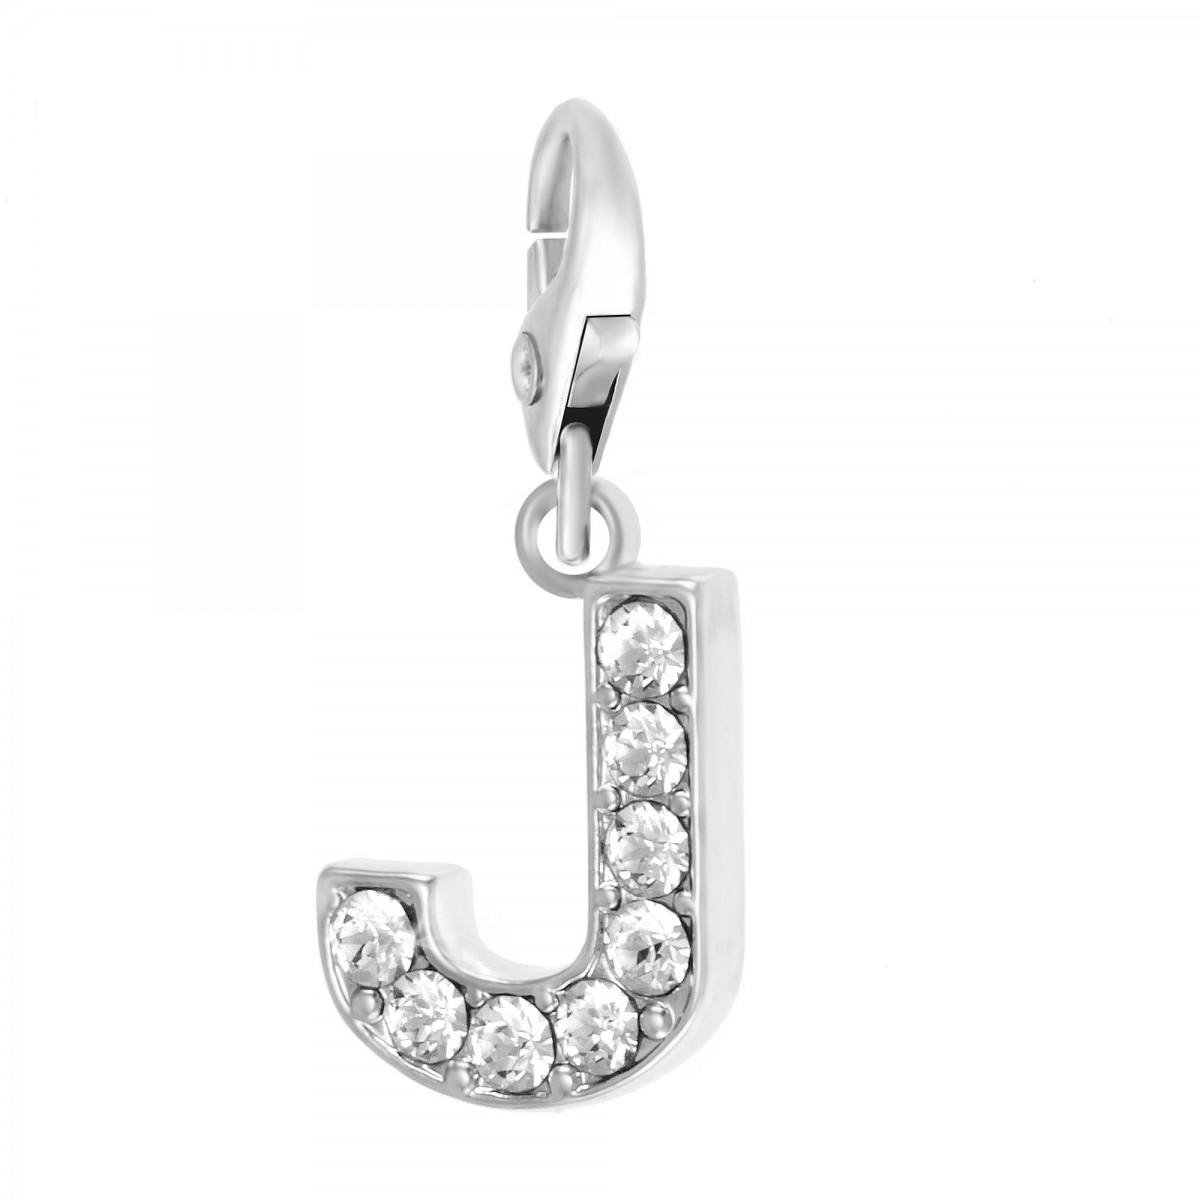 Charm Lettre J So Charm made with Crystal from Swarovski